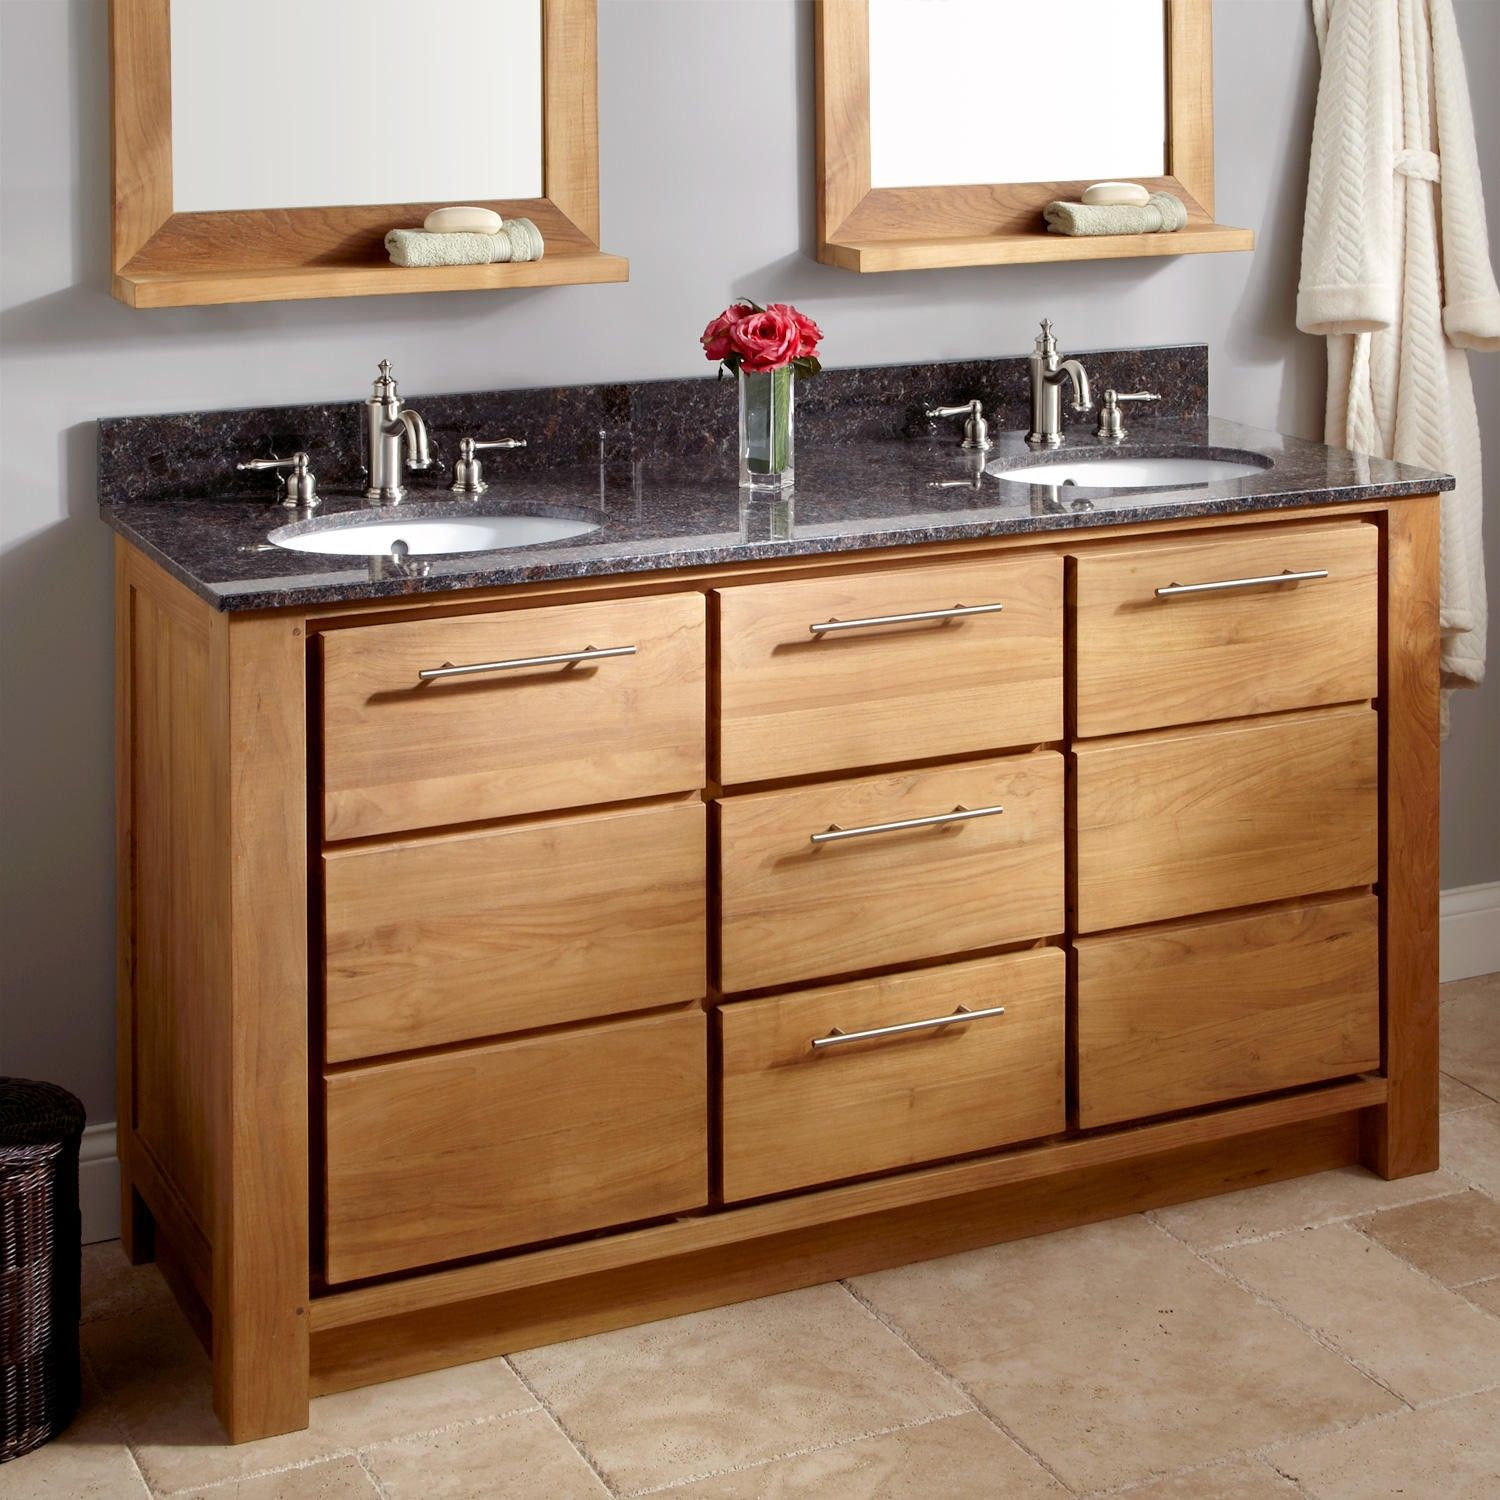 "60"" venica teak double vanity for undermount sinks - natural teak"